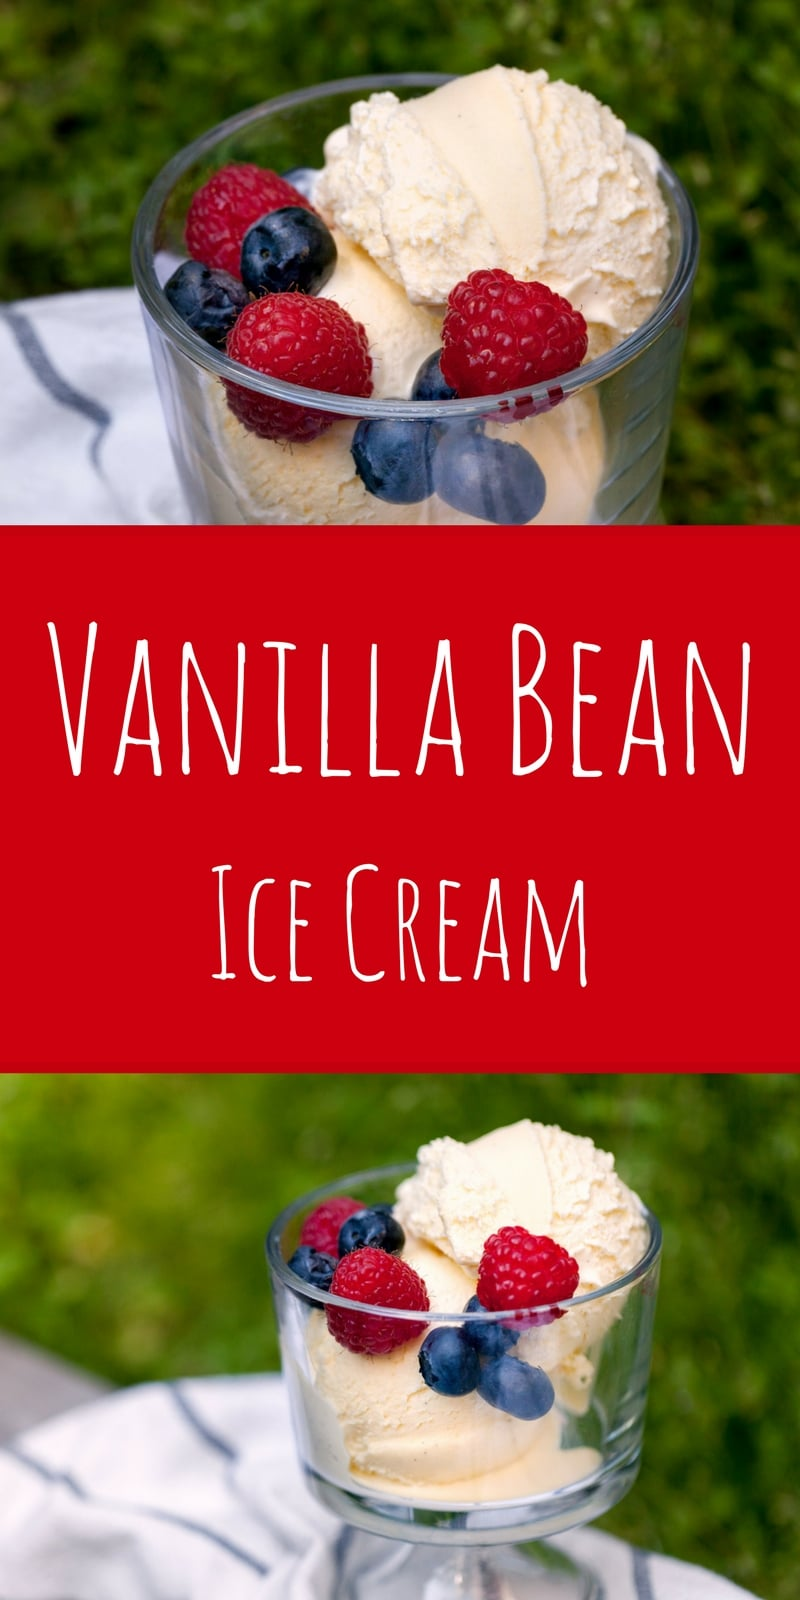 Creamy, dreamy vanilla bean ice cream, made the right way with a simple custard and real vanilla. Say hello to your new favorite flavor!